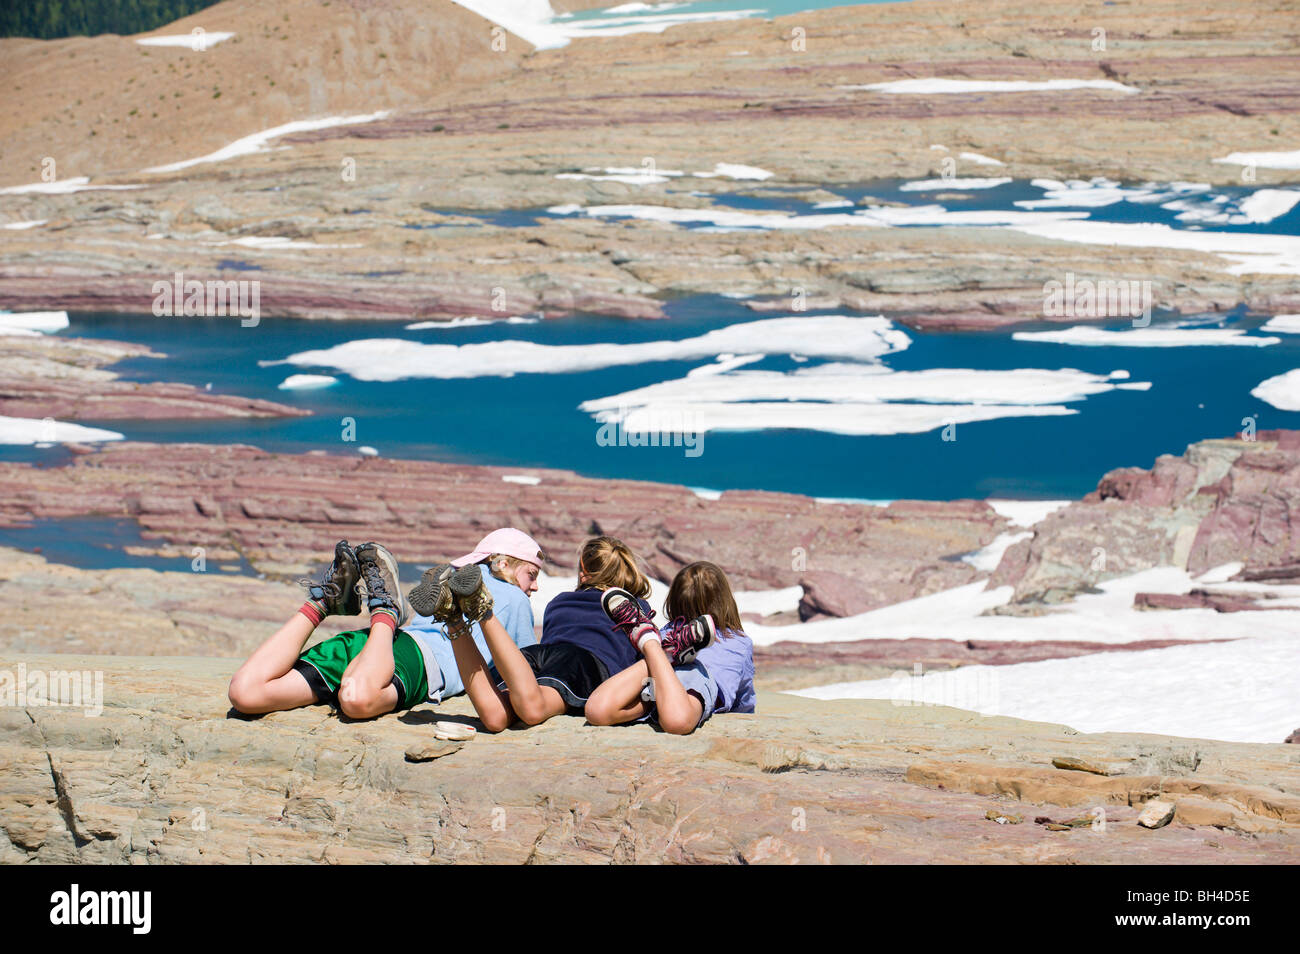 Three young girls relax and soak up the sunshine overlooking a glacier lake in Glacier National Park, Montana. - Stock Image